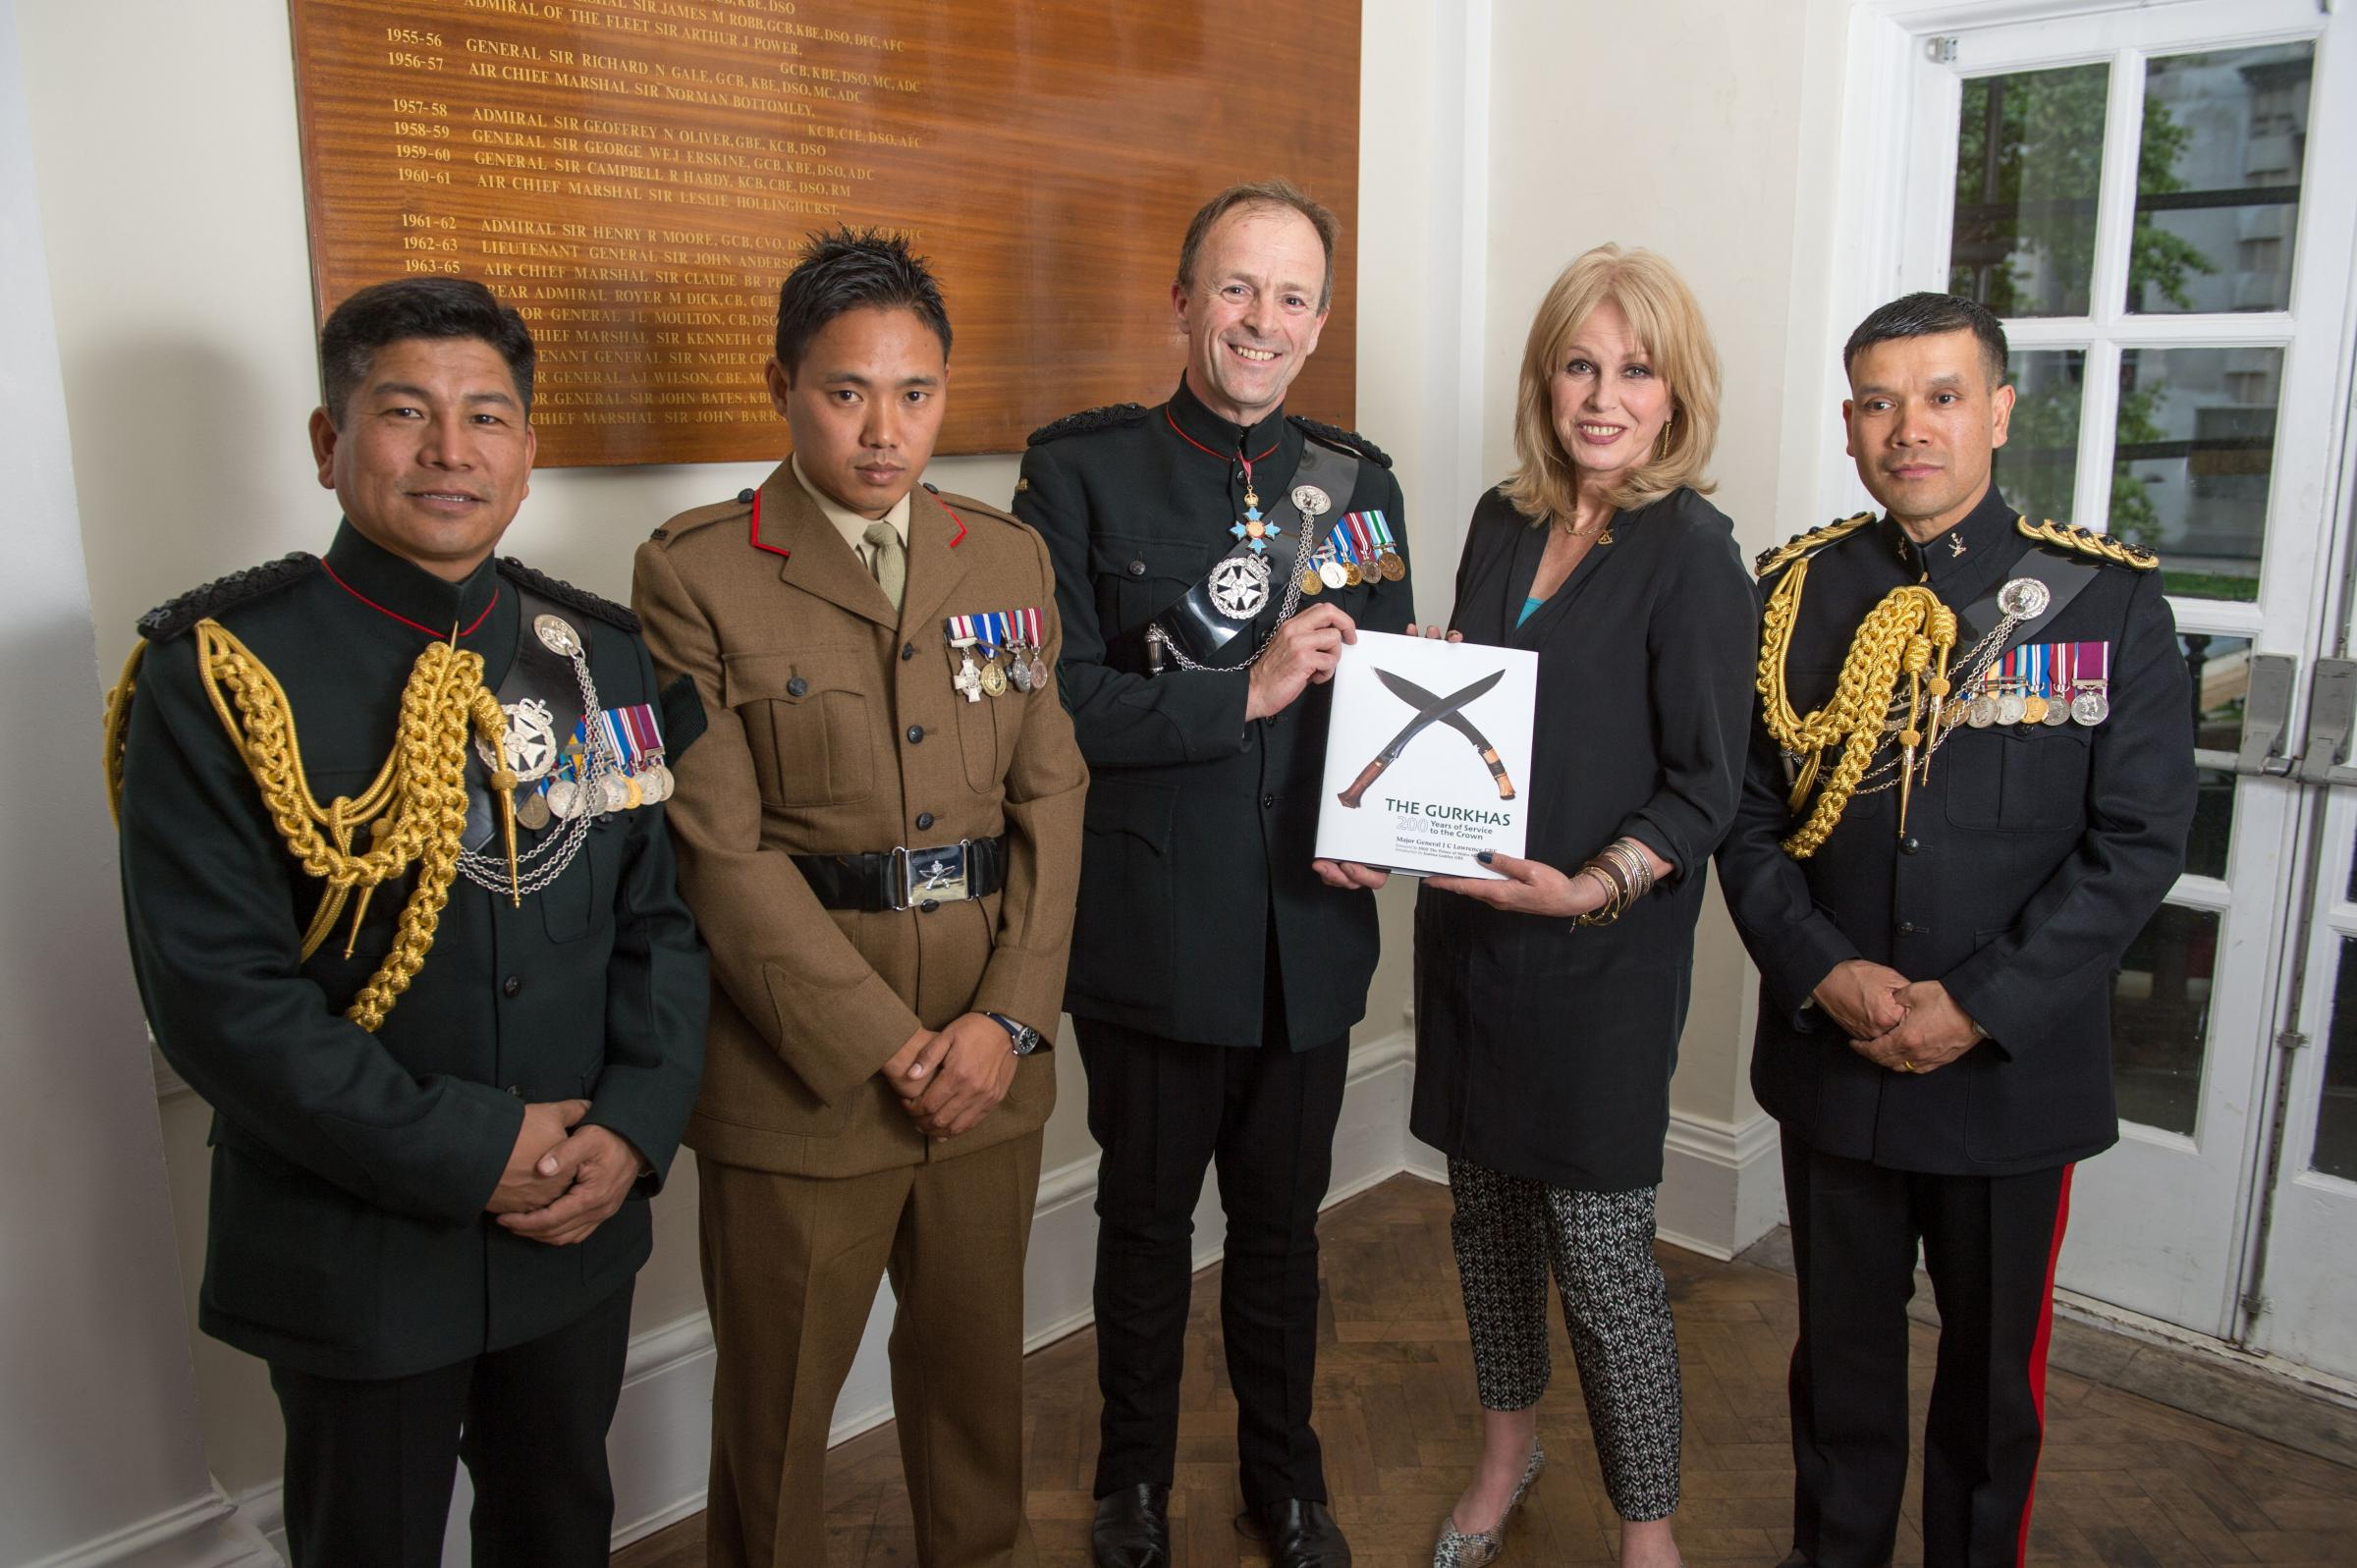 Maj Gen Lawrence (centre) with Joanna Lumley, Sergeant Dipprasad Pun CGC (second left) and the Queen's Gurkha Orderly Officers during the London launch of The Gurkhas 200 Years of Service to the Crown